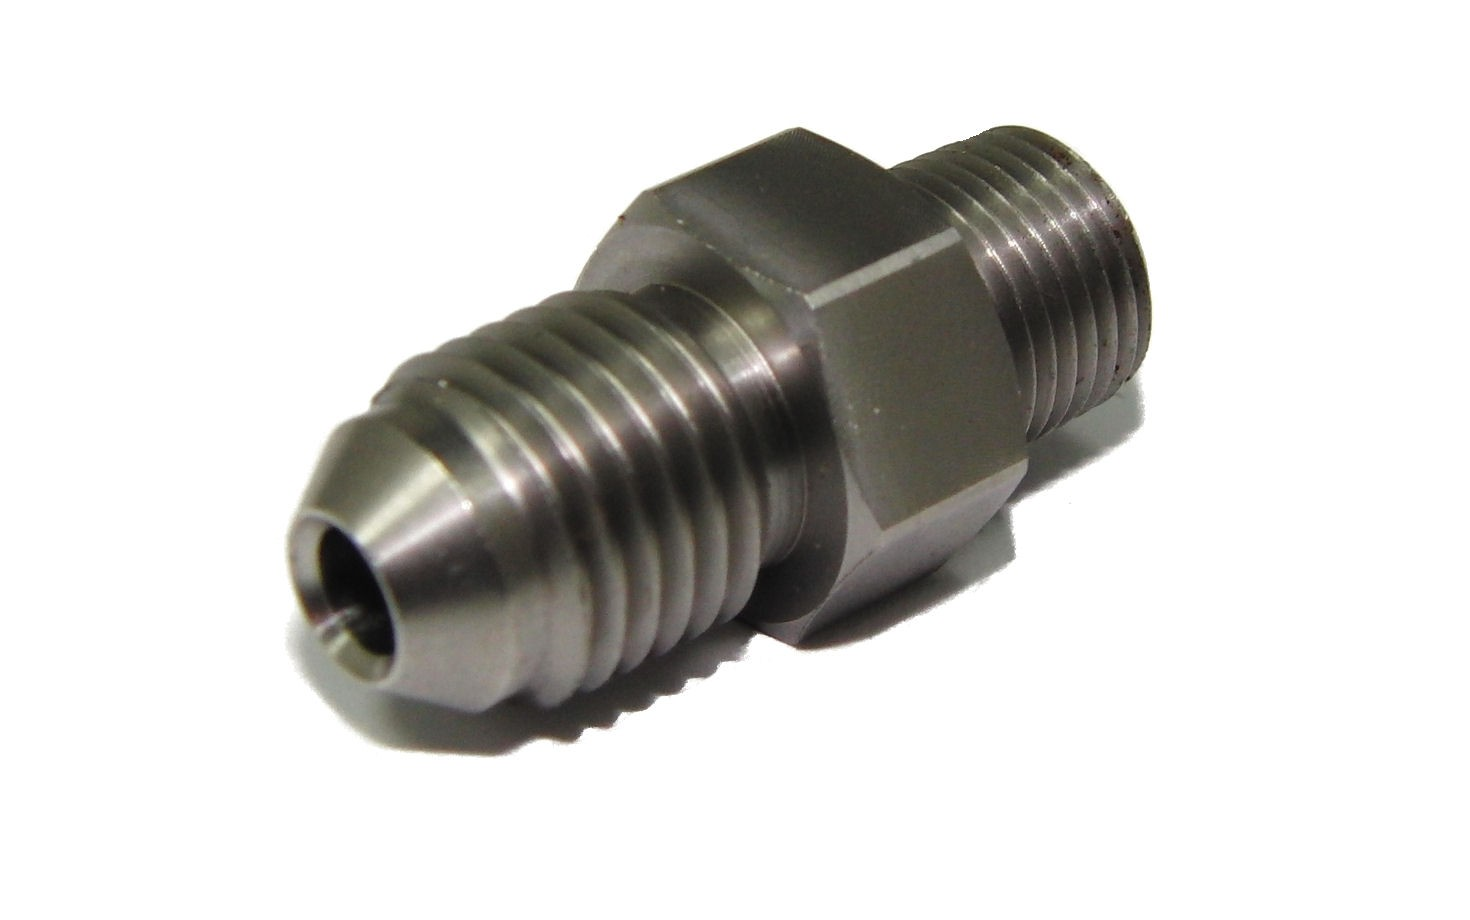 4AN (7/16 UNF) to 1/8 BSP M / M Nitrous Adapter